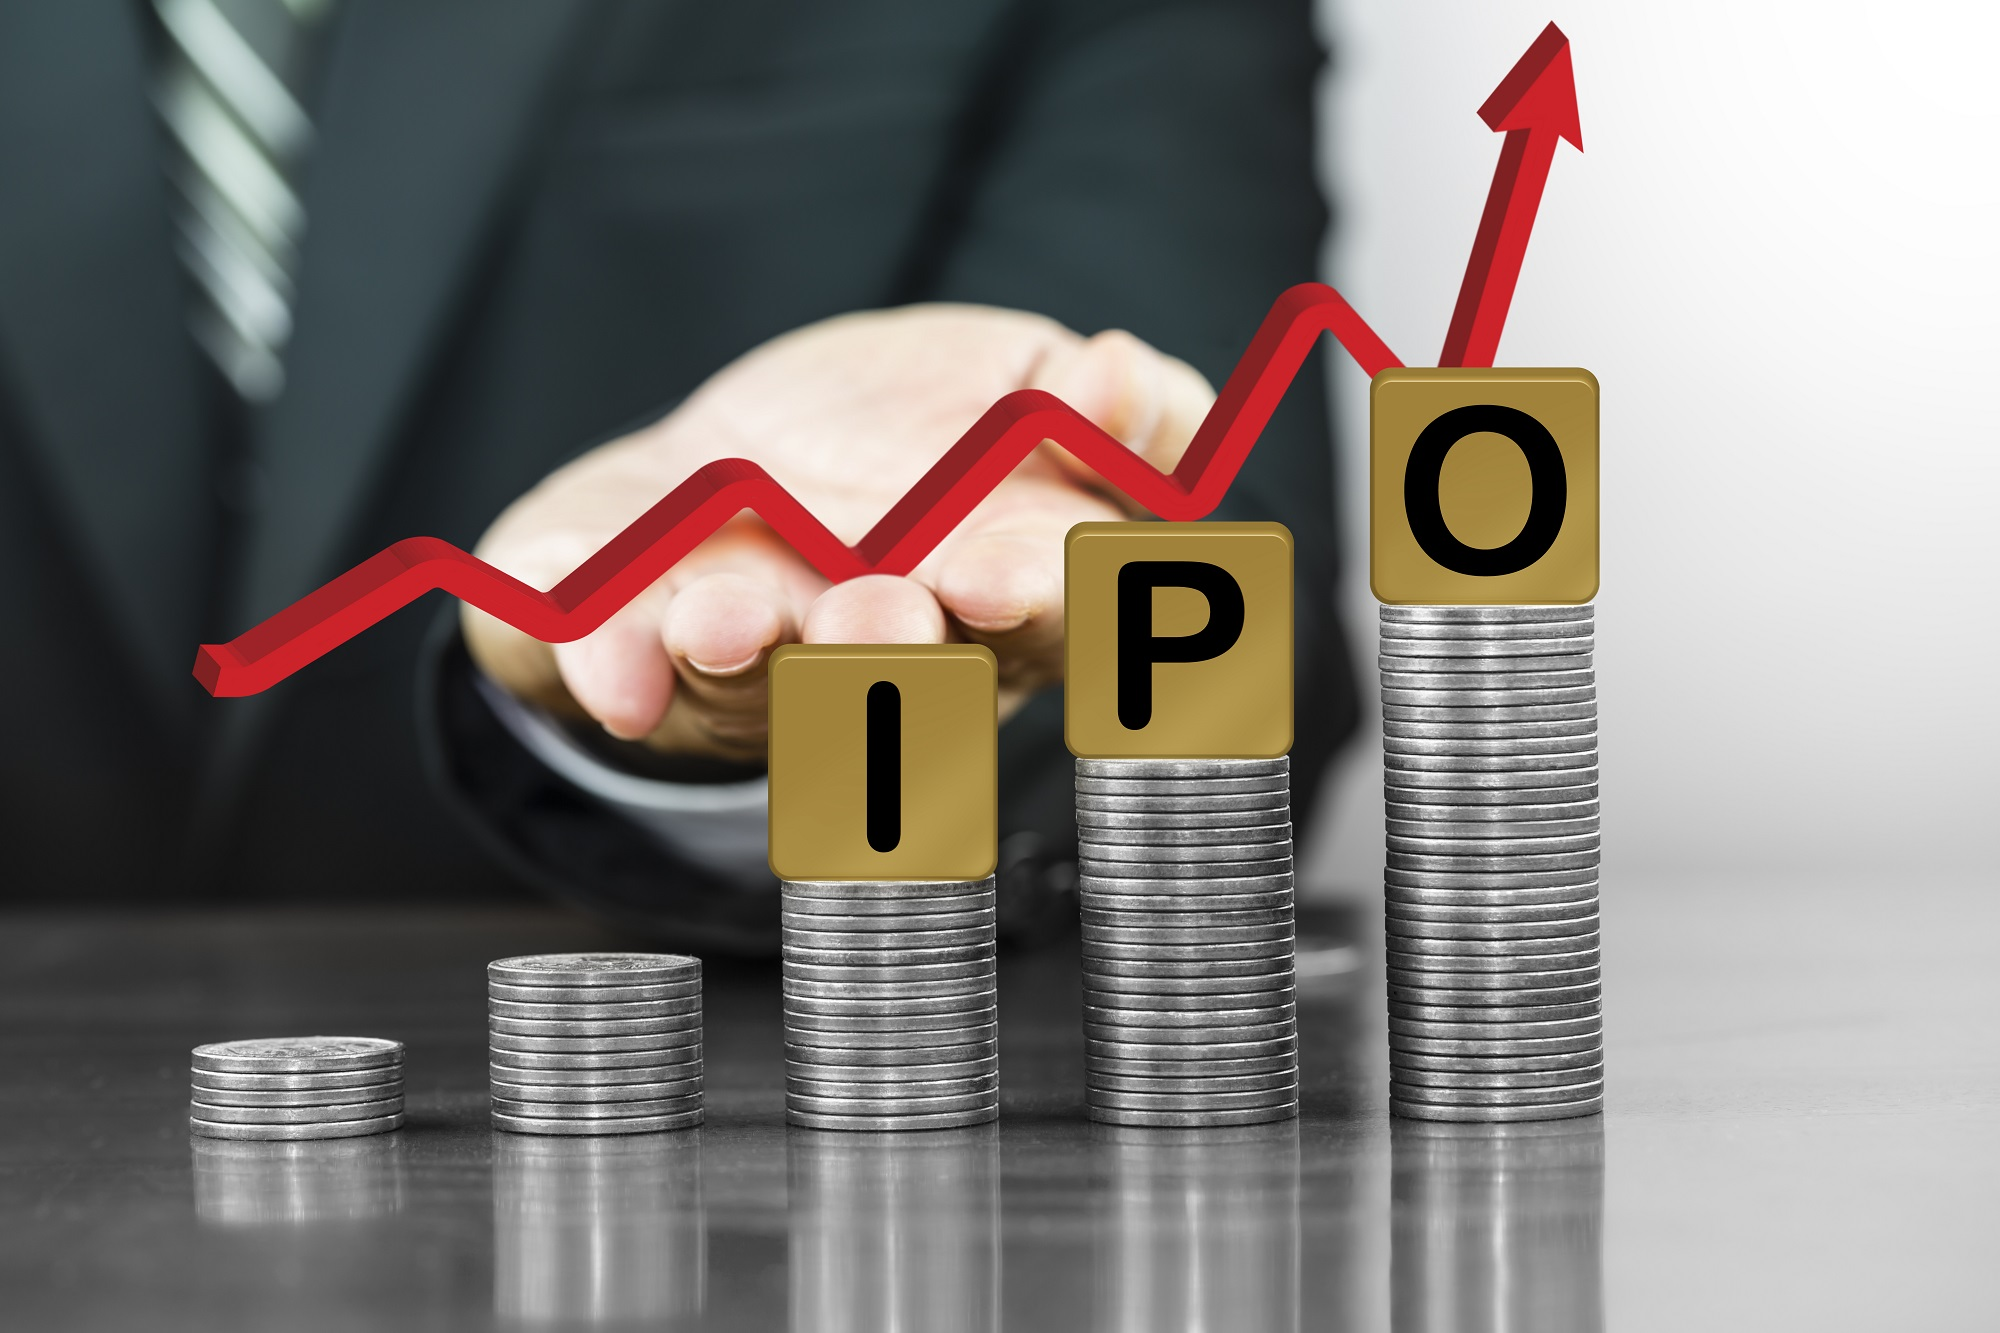 When does ipo occur